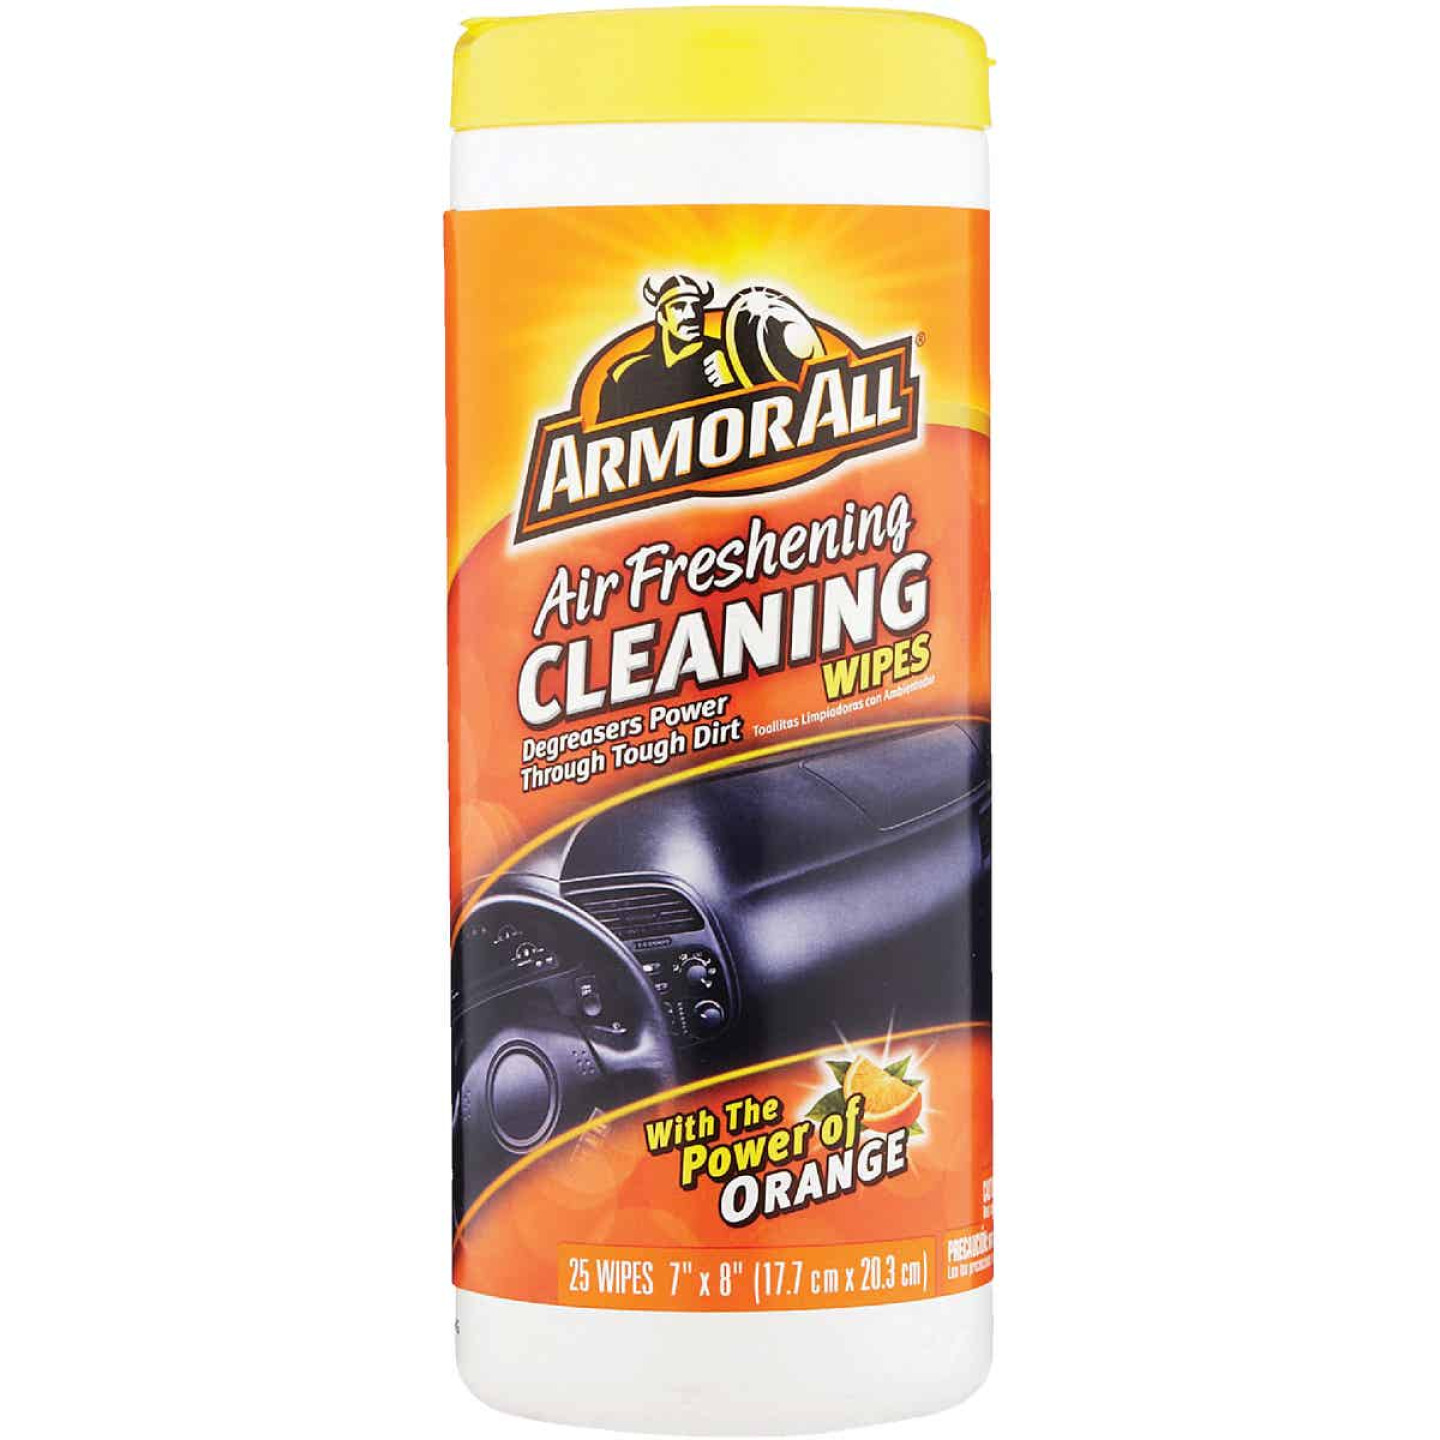 Armor All Air Freshening Cleaning Orange 7 In. x 8 In. Cleaning Wipes (25-Count) Image 1